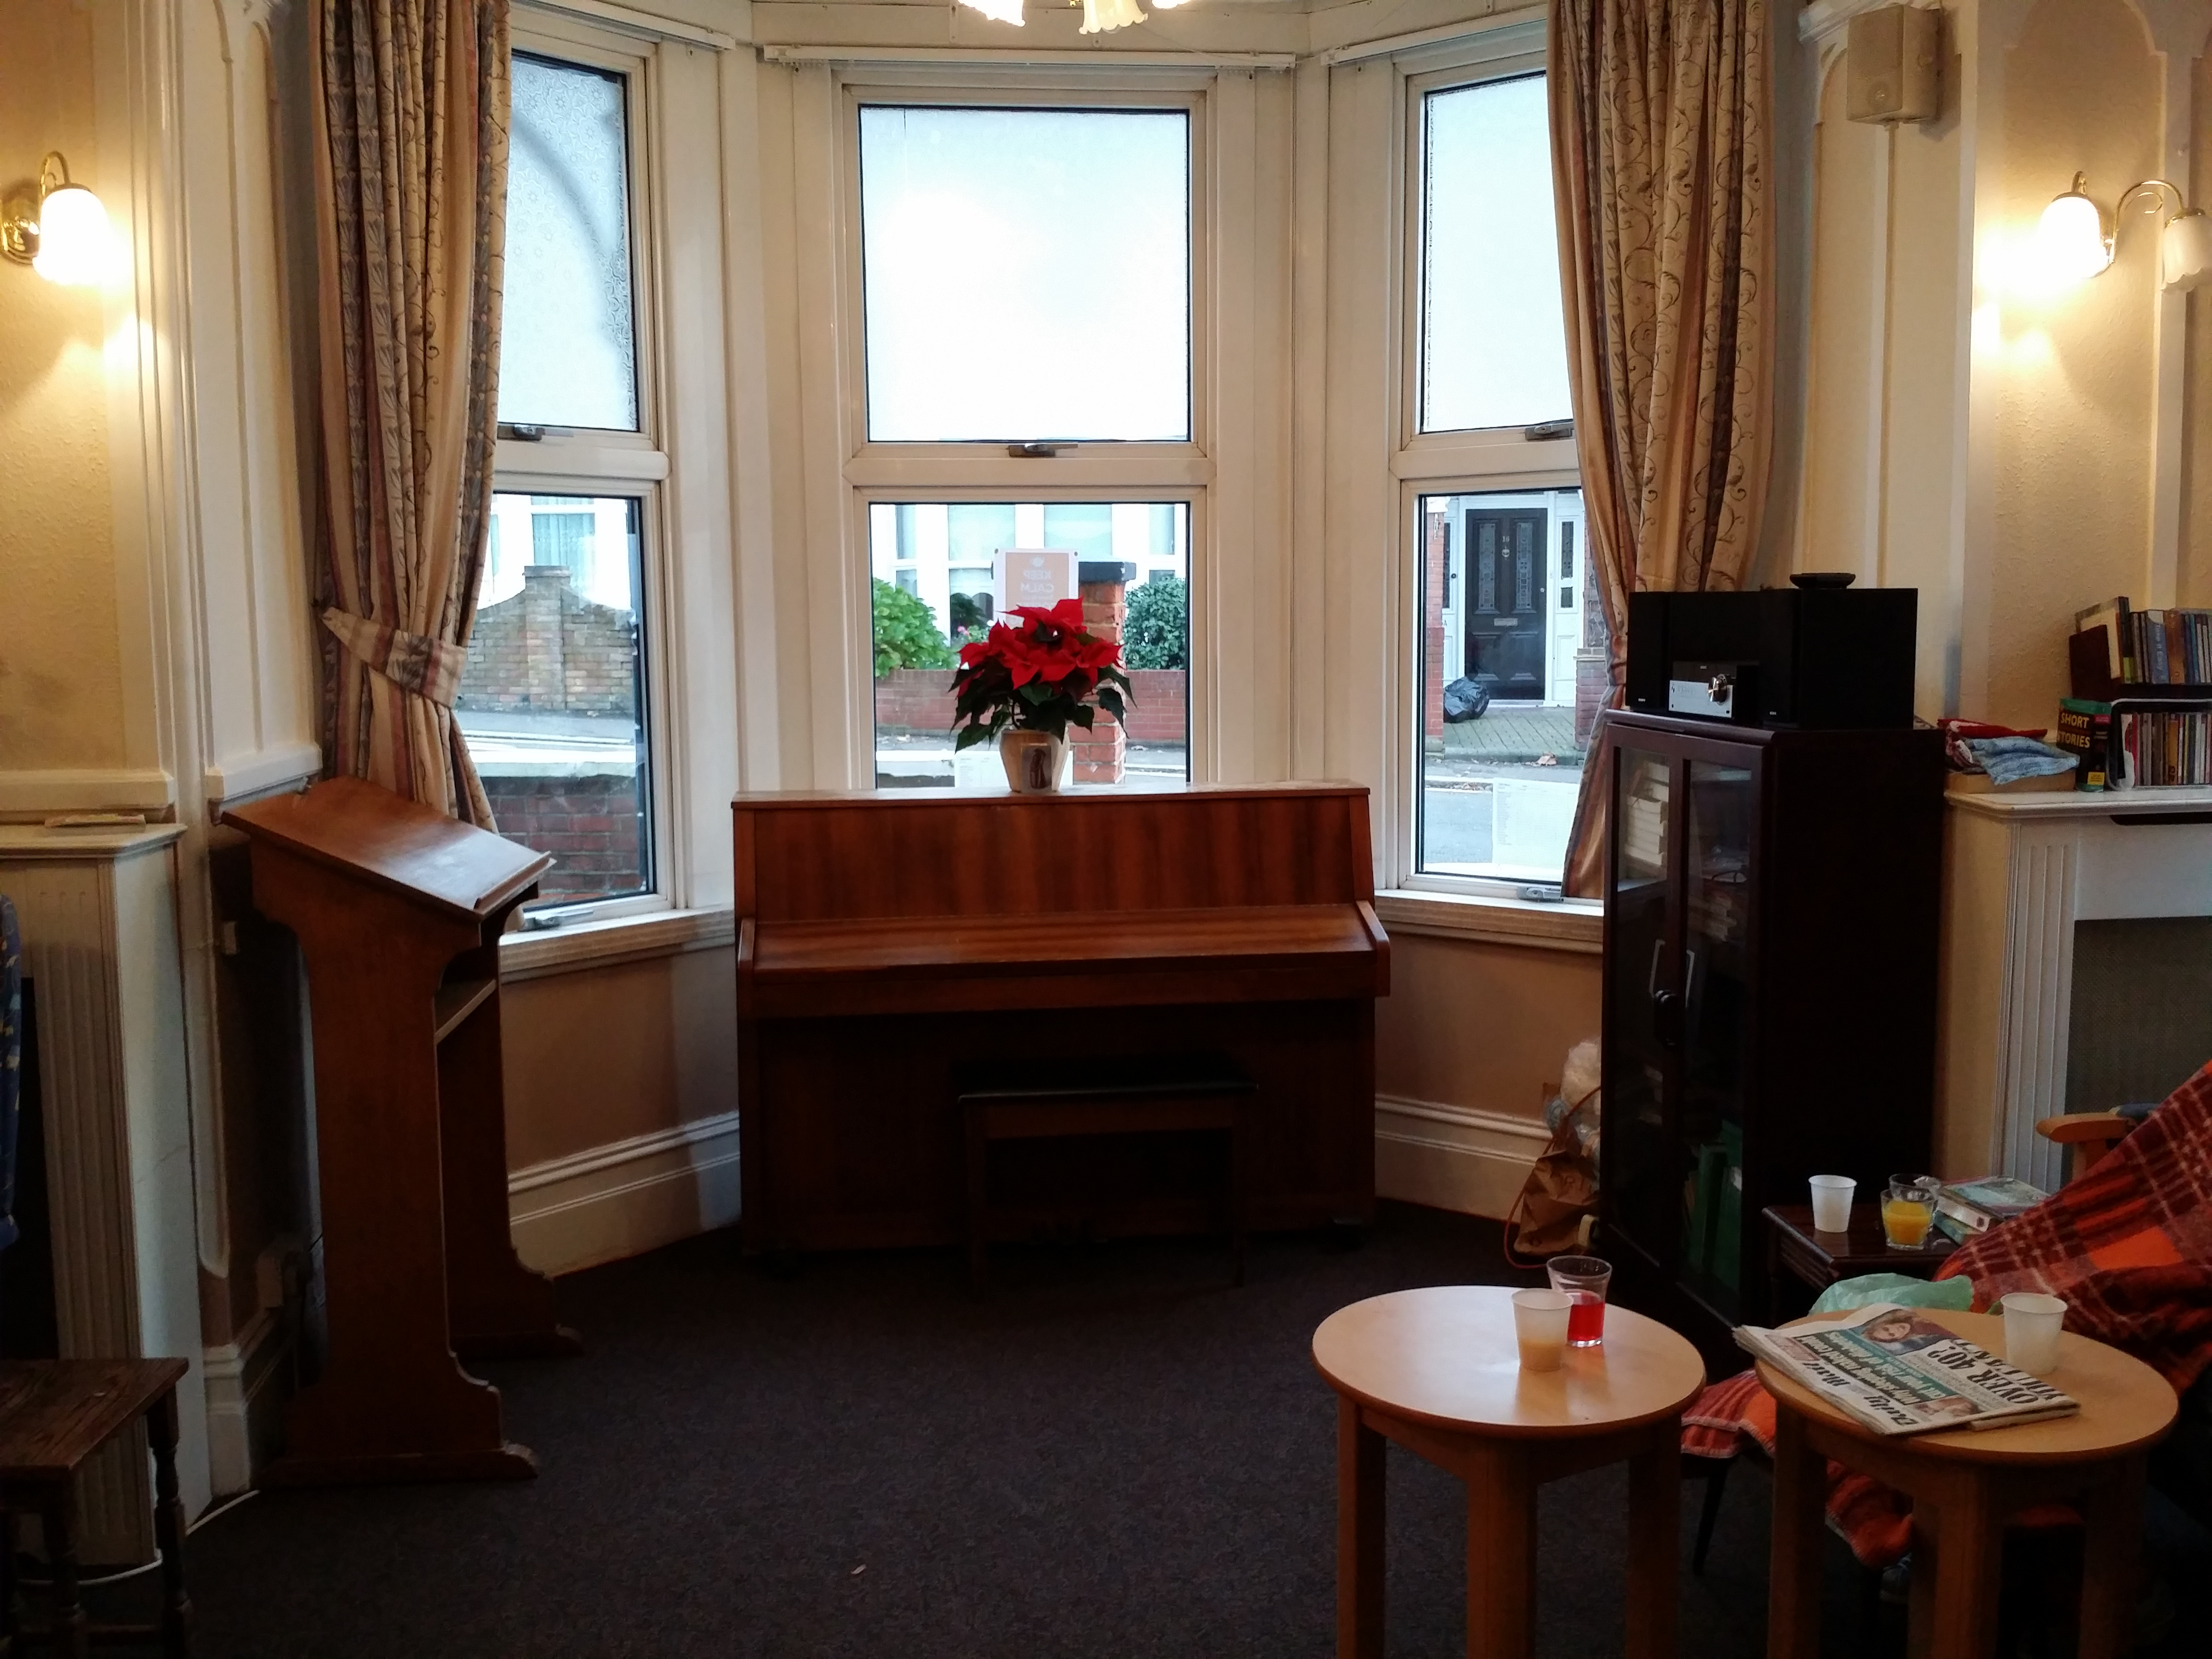 Westerley Residential Care Home For The Elderly Westcliff On Sea